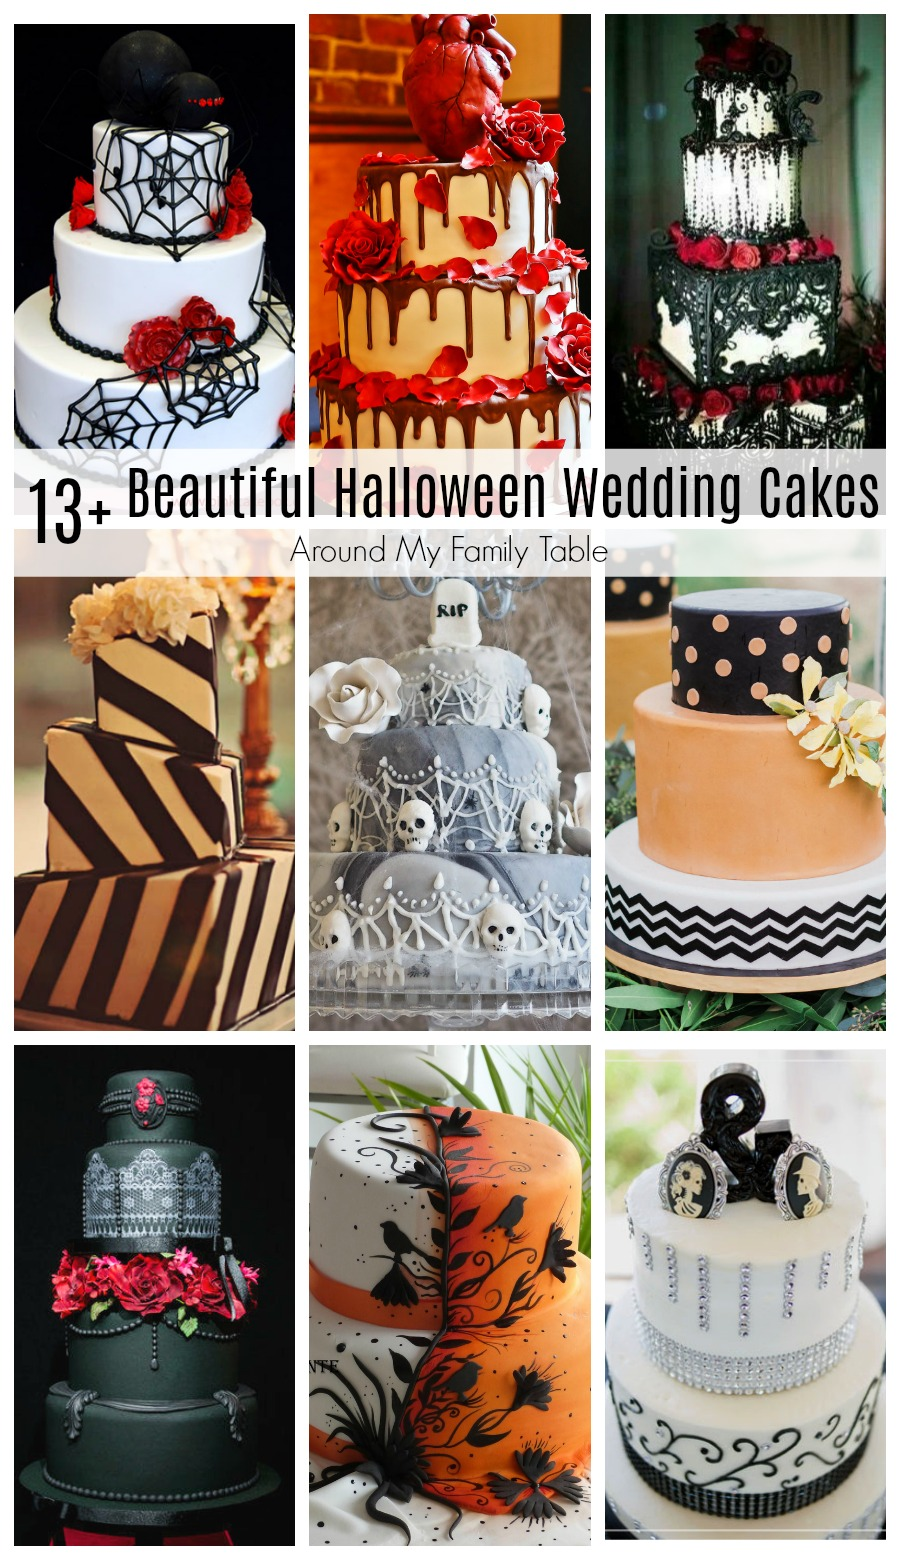 Planning an October wedding?  Check out these Beautiful Halloween Wedding Cakes to get some ideas. From fall ideas to creepy halloween ideas, they are all stunning!